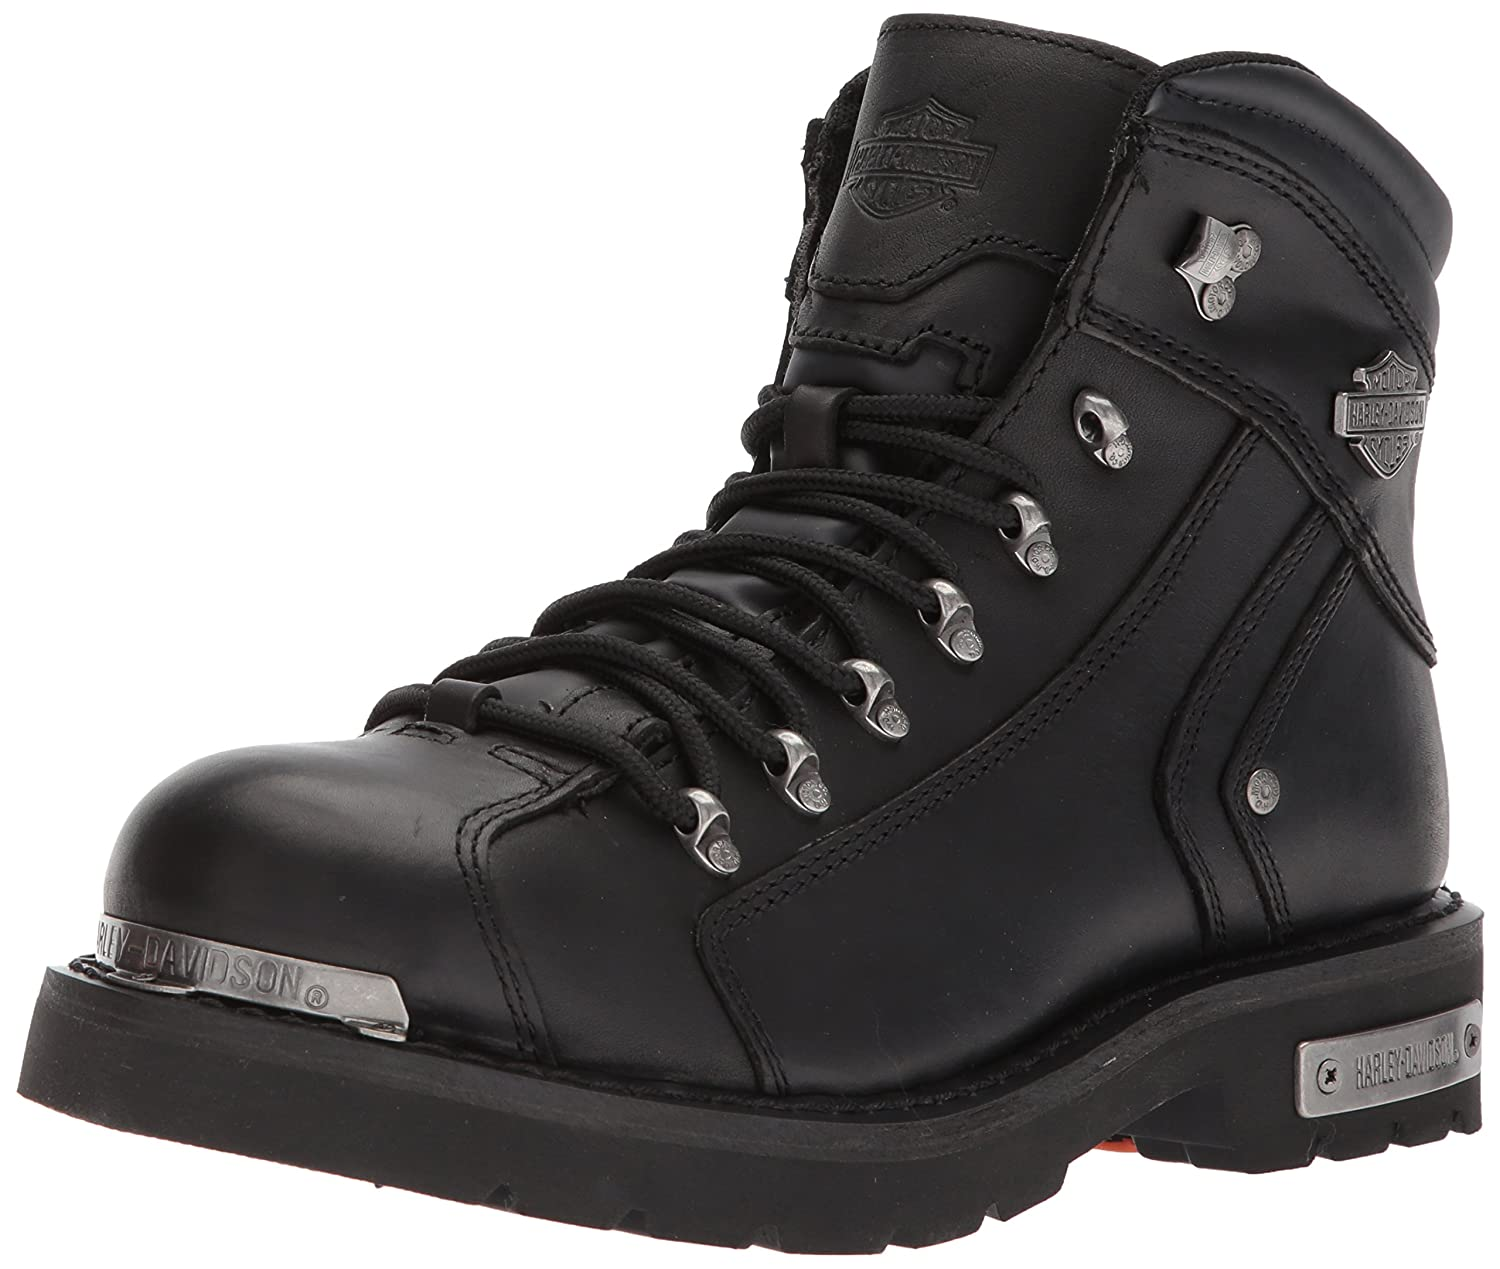 Harley-Davidson Men's Electron Motorcycle Boot D96017